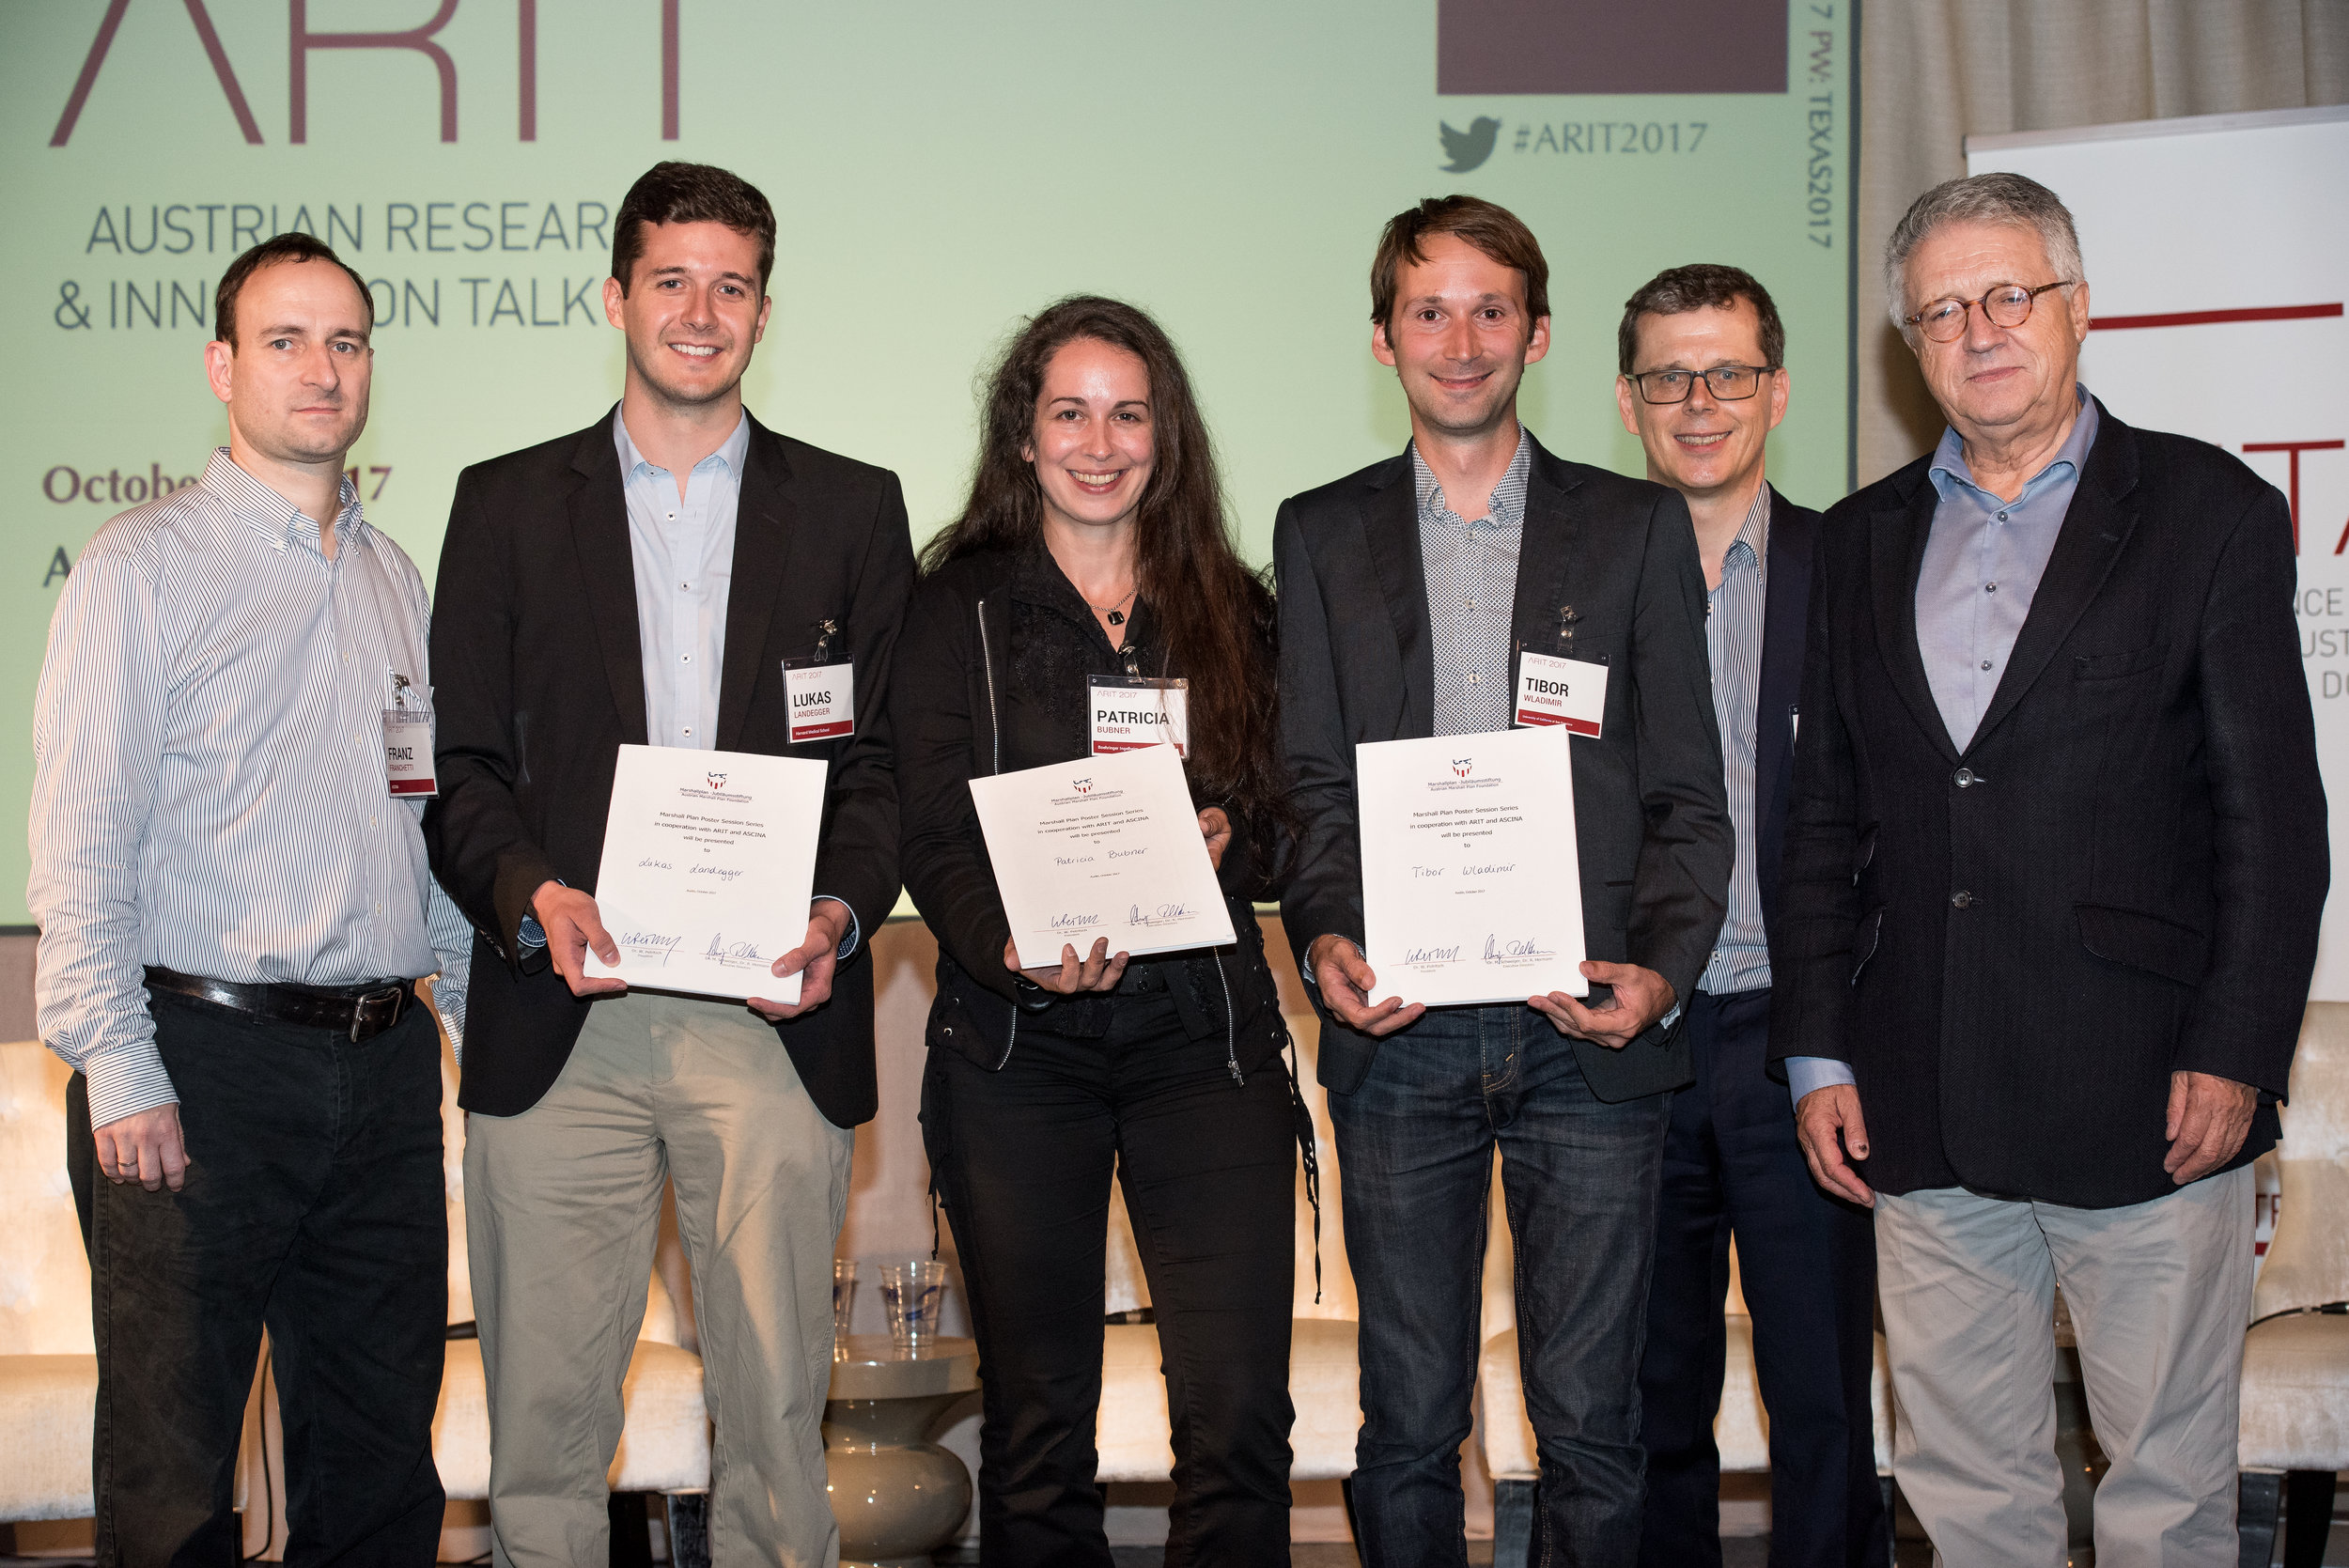 The winners of the Austrian Marshall Plan Foundation Poster Award